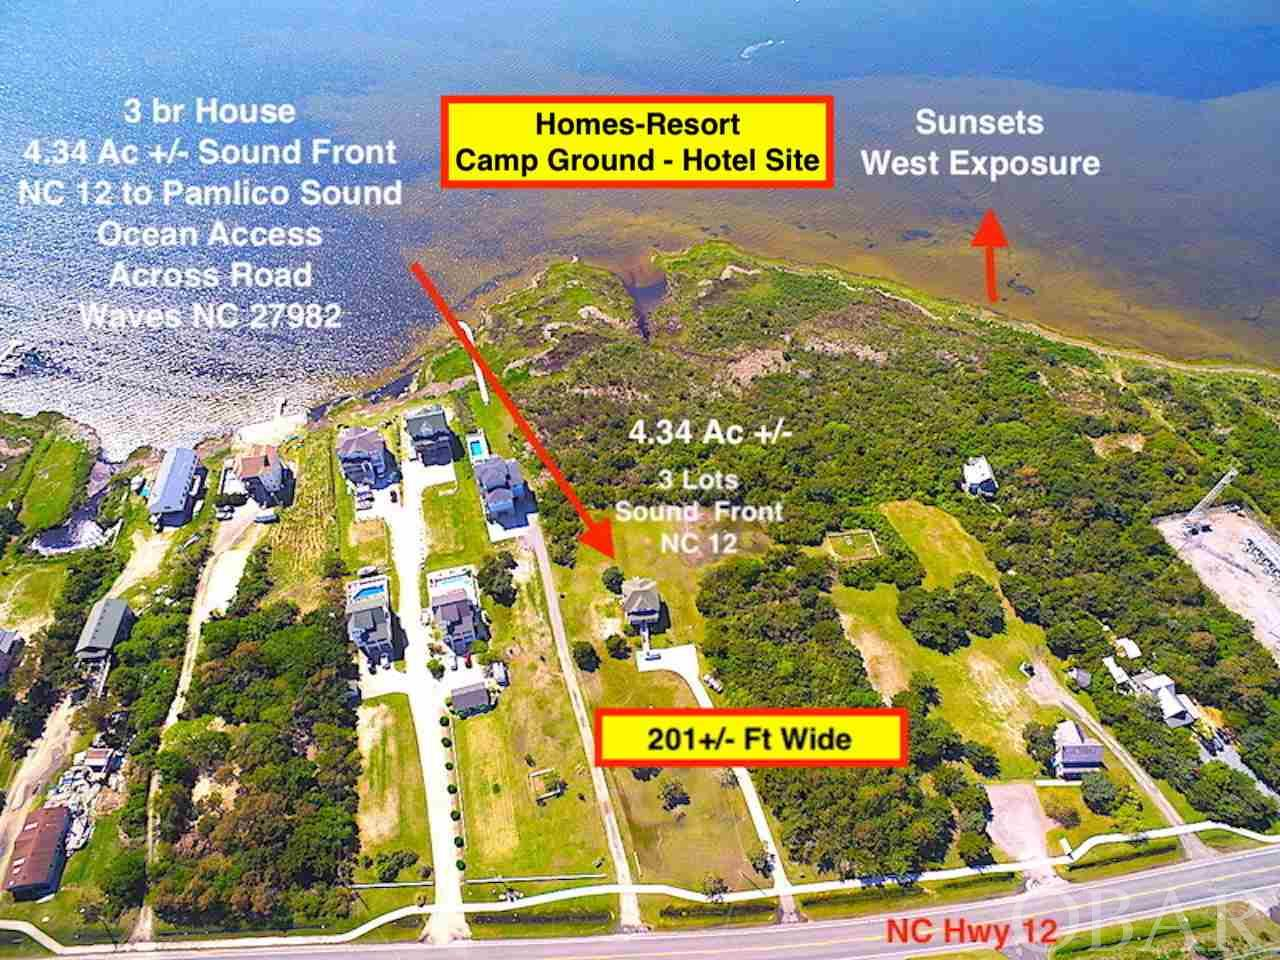 25478 NC 12 Highway, Waves, NC 27982, ,Commercial/industrial,For sale,NC 12 Highway,103049